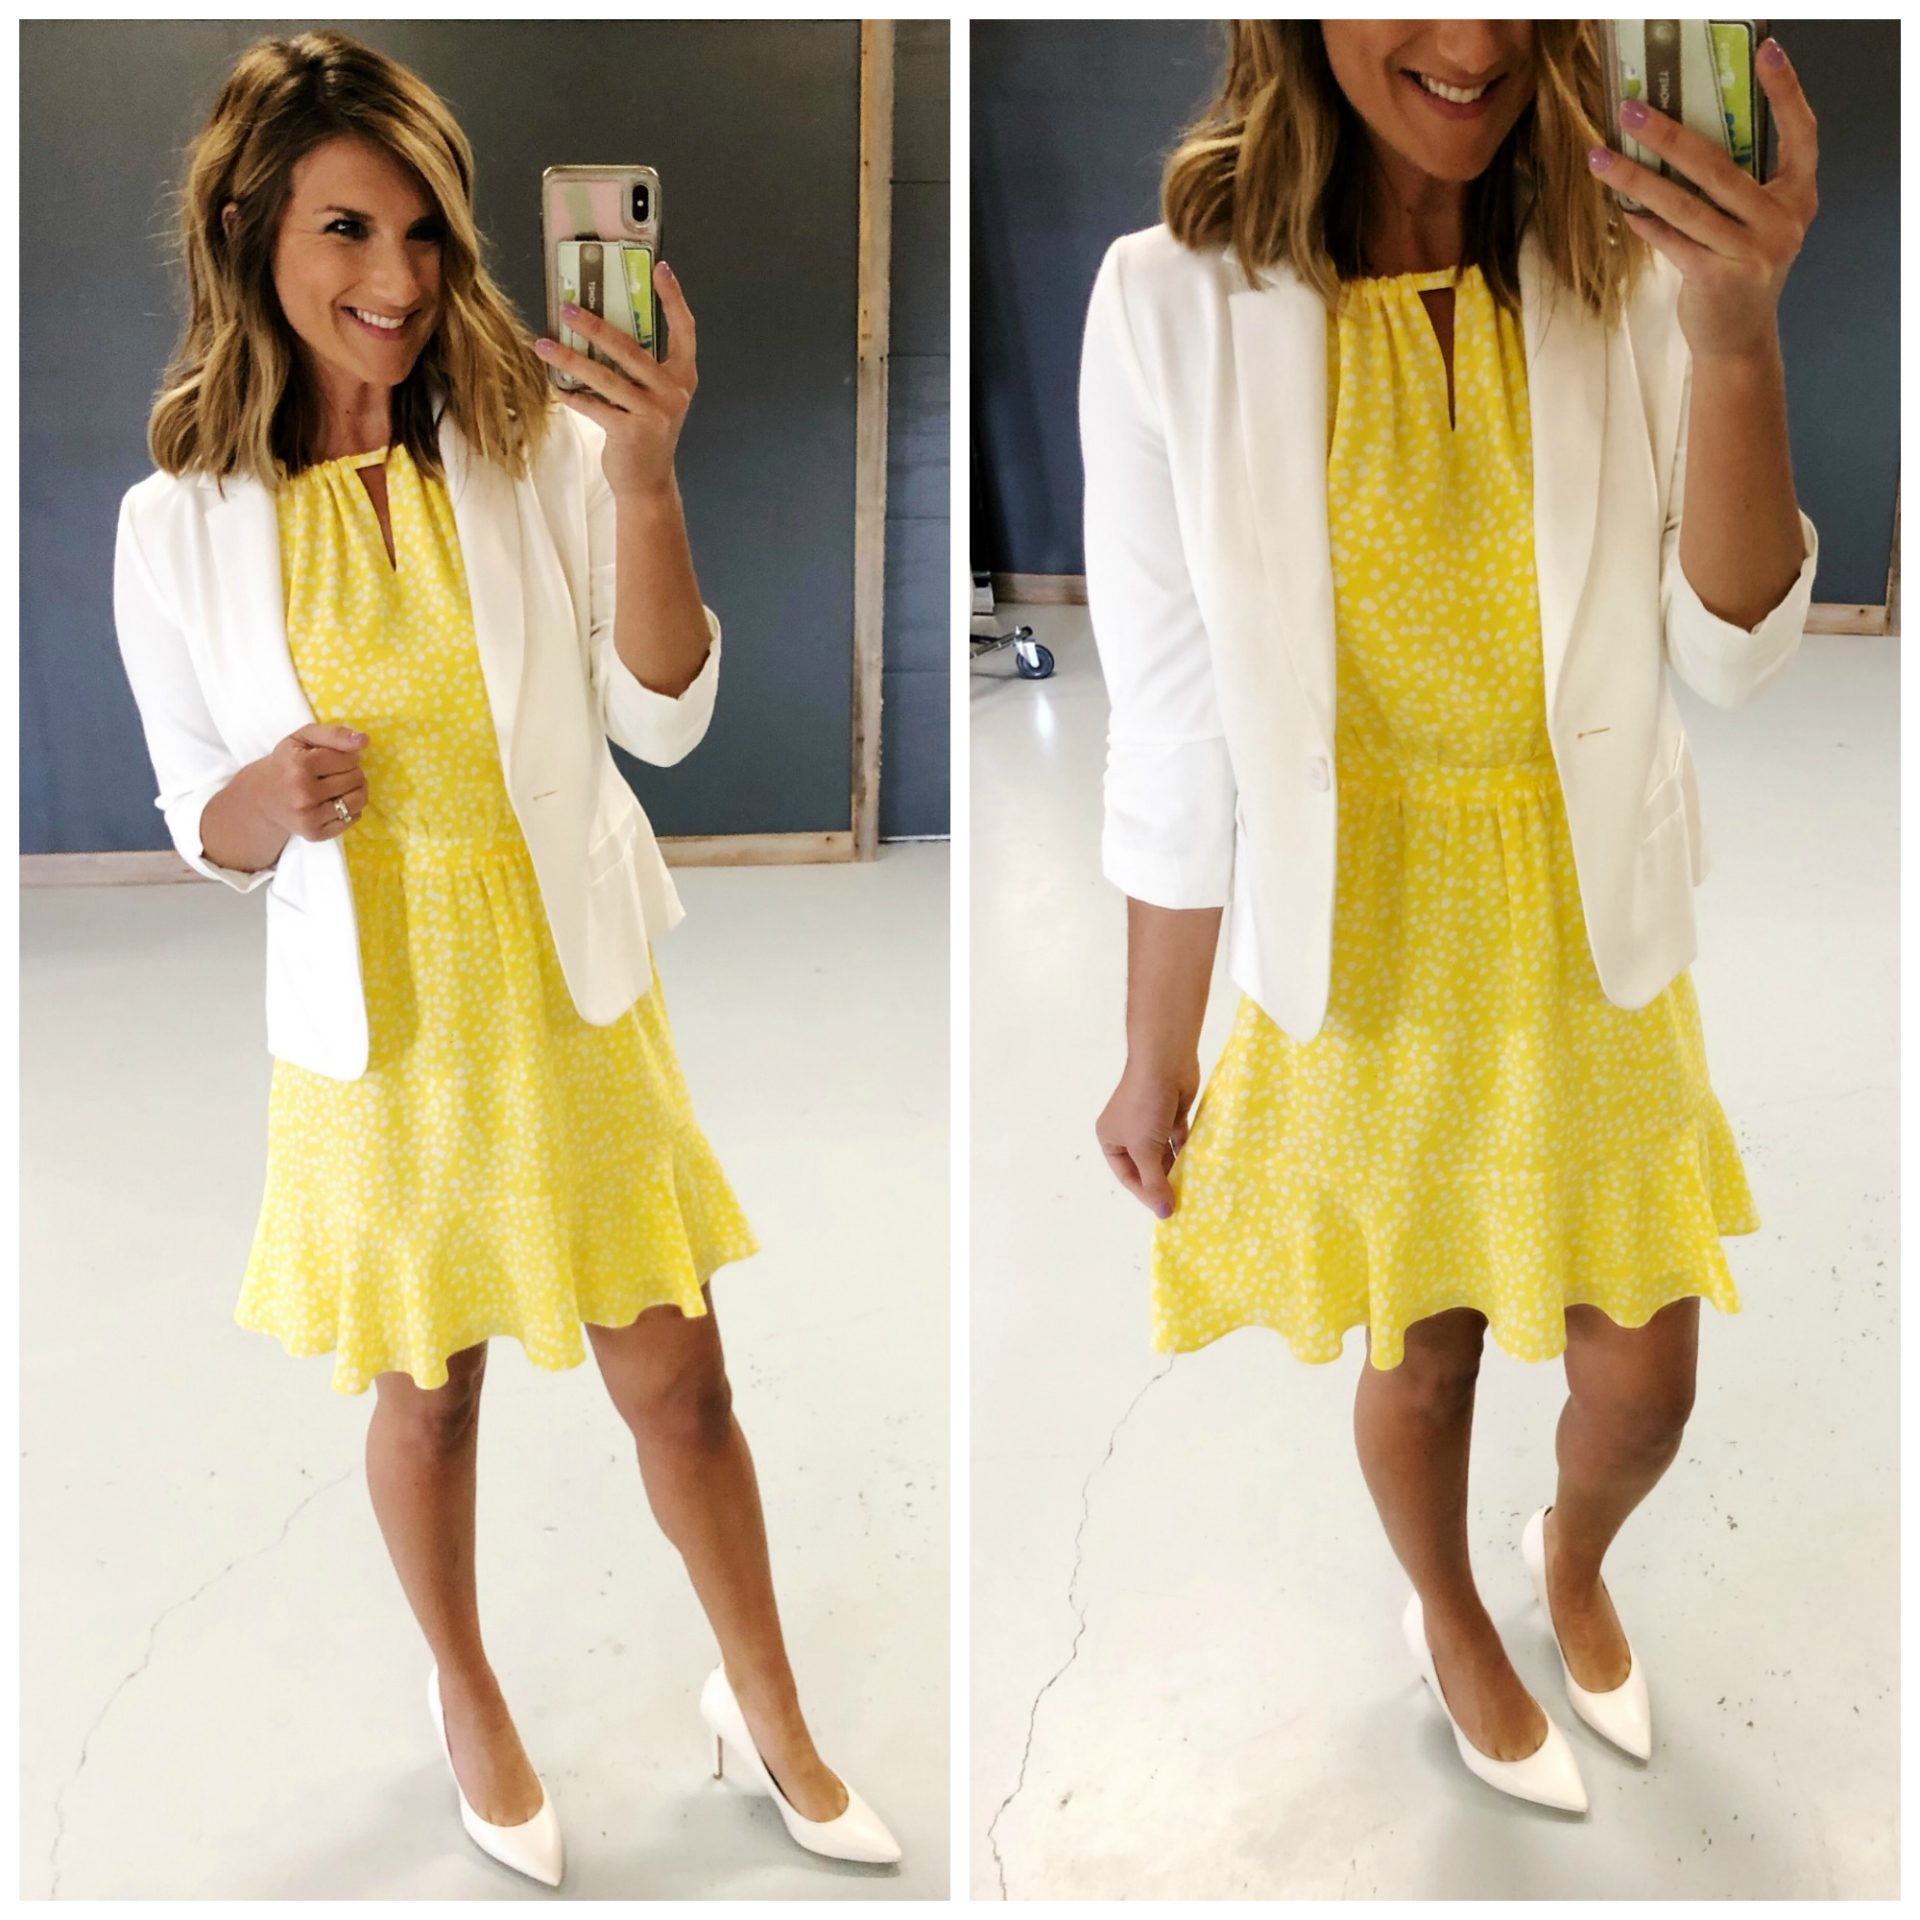 How to style a dress for work // What to wear with a white blazer // Spring Work Outfit